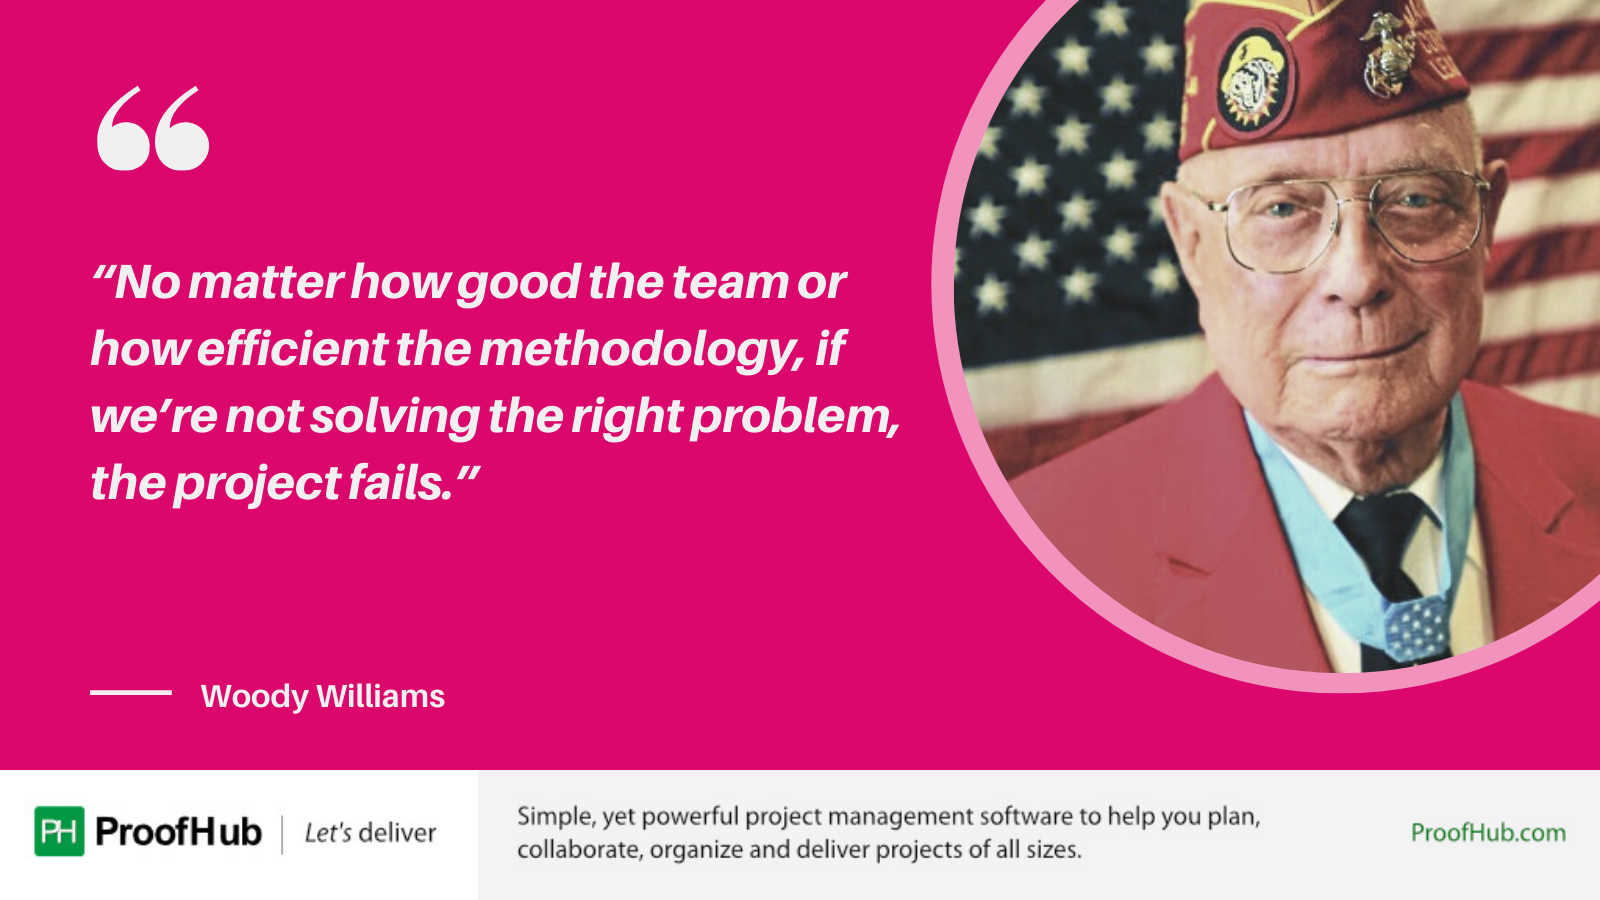 No matter how good the team or how efficient the methodology, if we're not solving the right problem, the project fails quote byWoody Williams